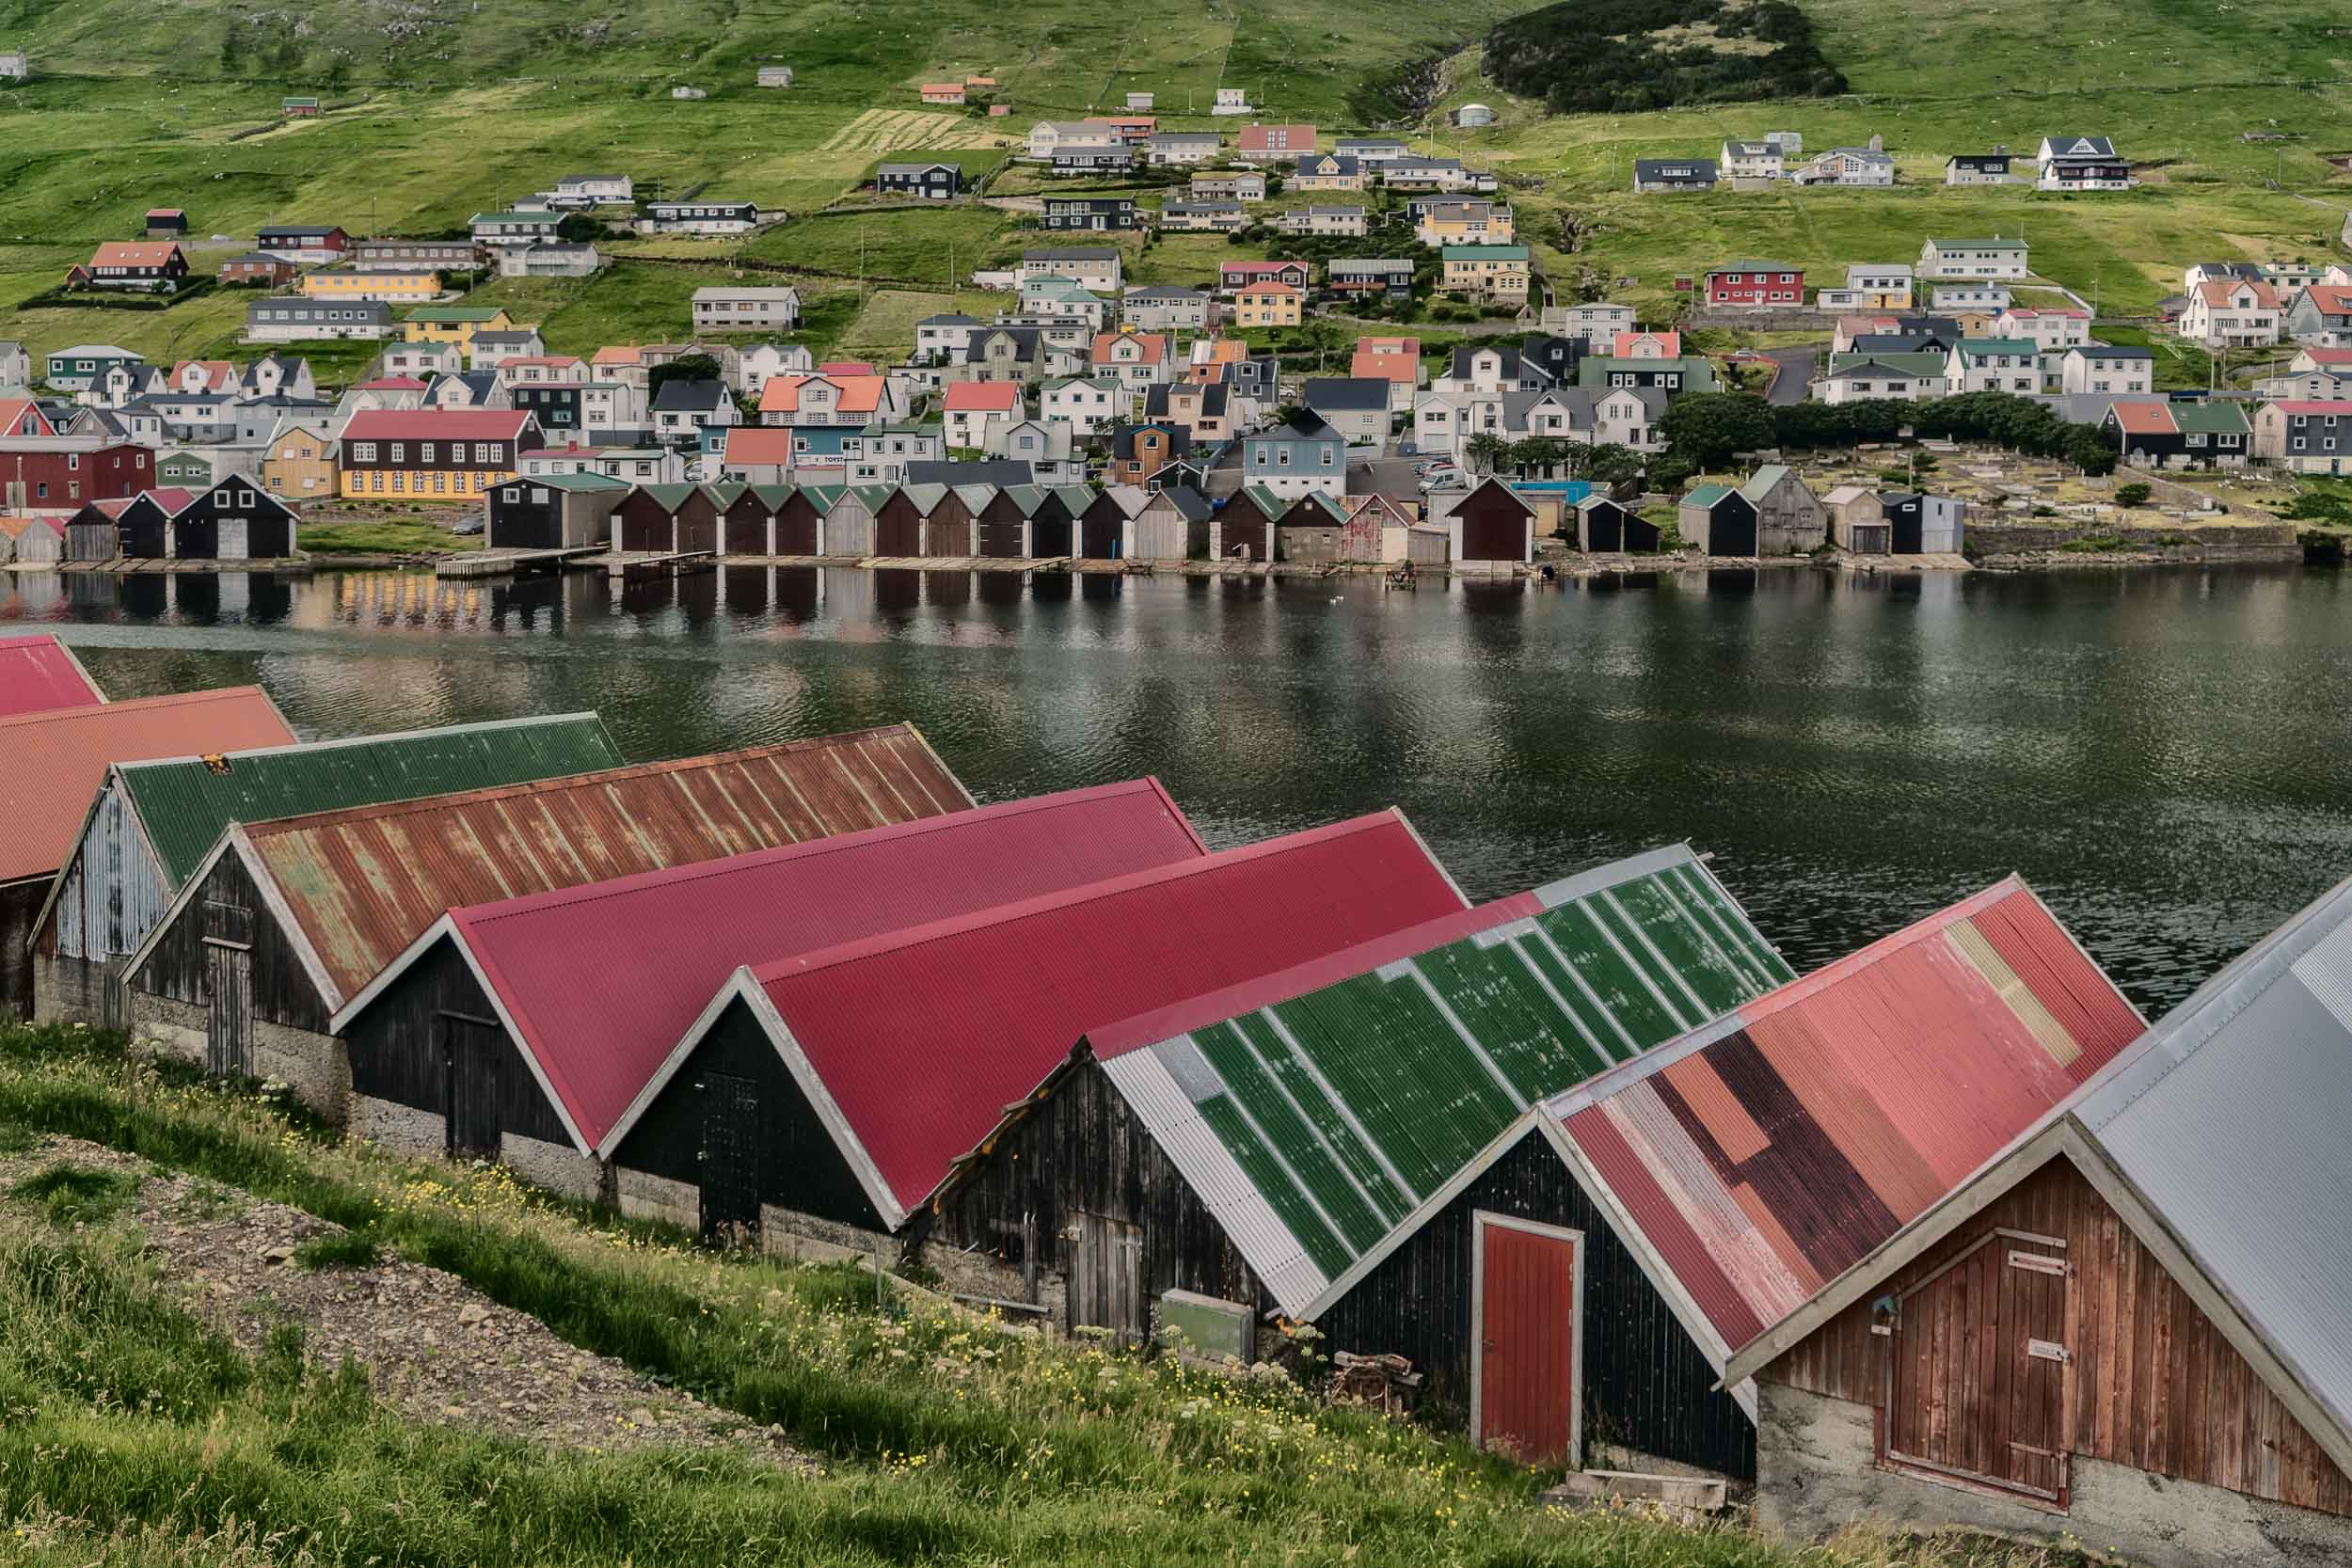 Colorful rooftops on either side of the fjord in the village of    Vágur    on the island of    Suðuroy    in the    Faroe Islands   .